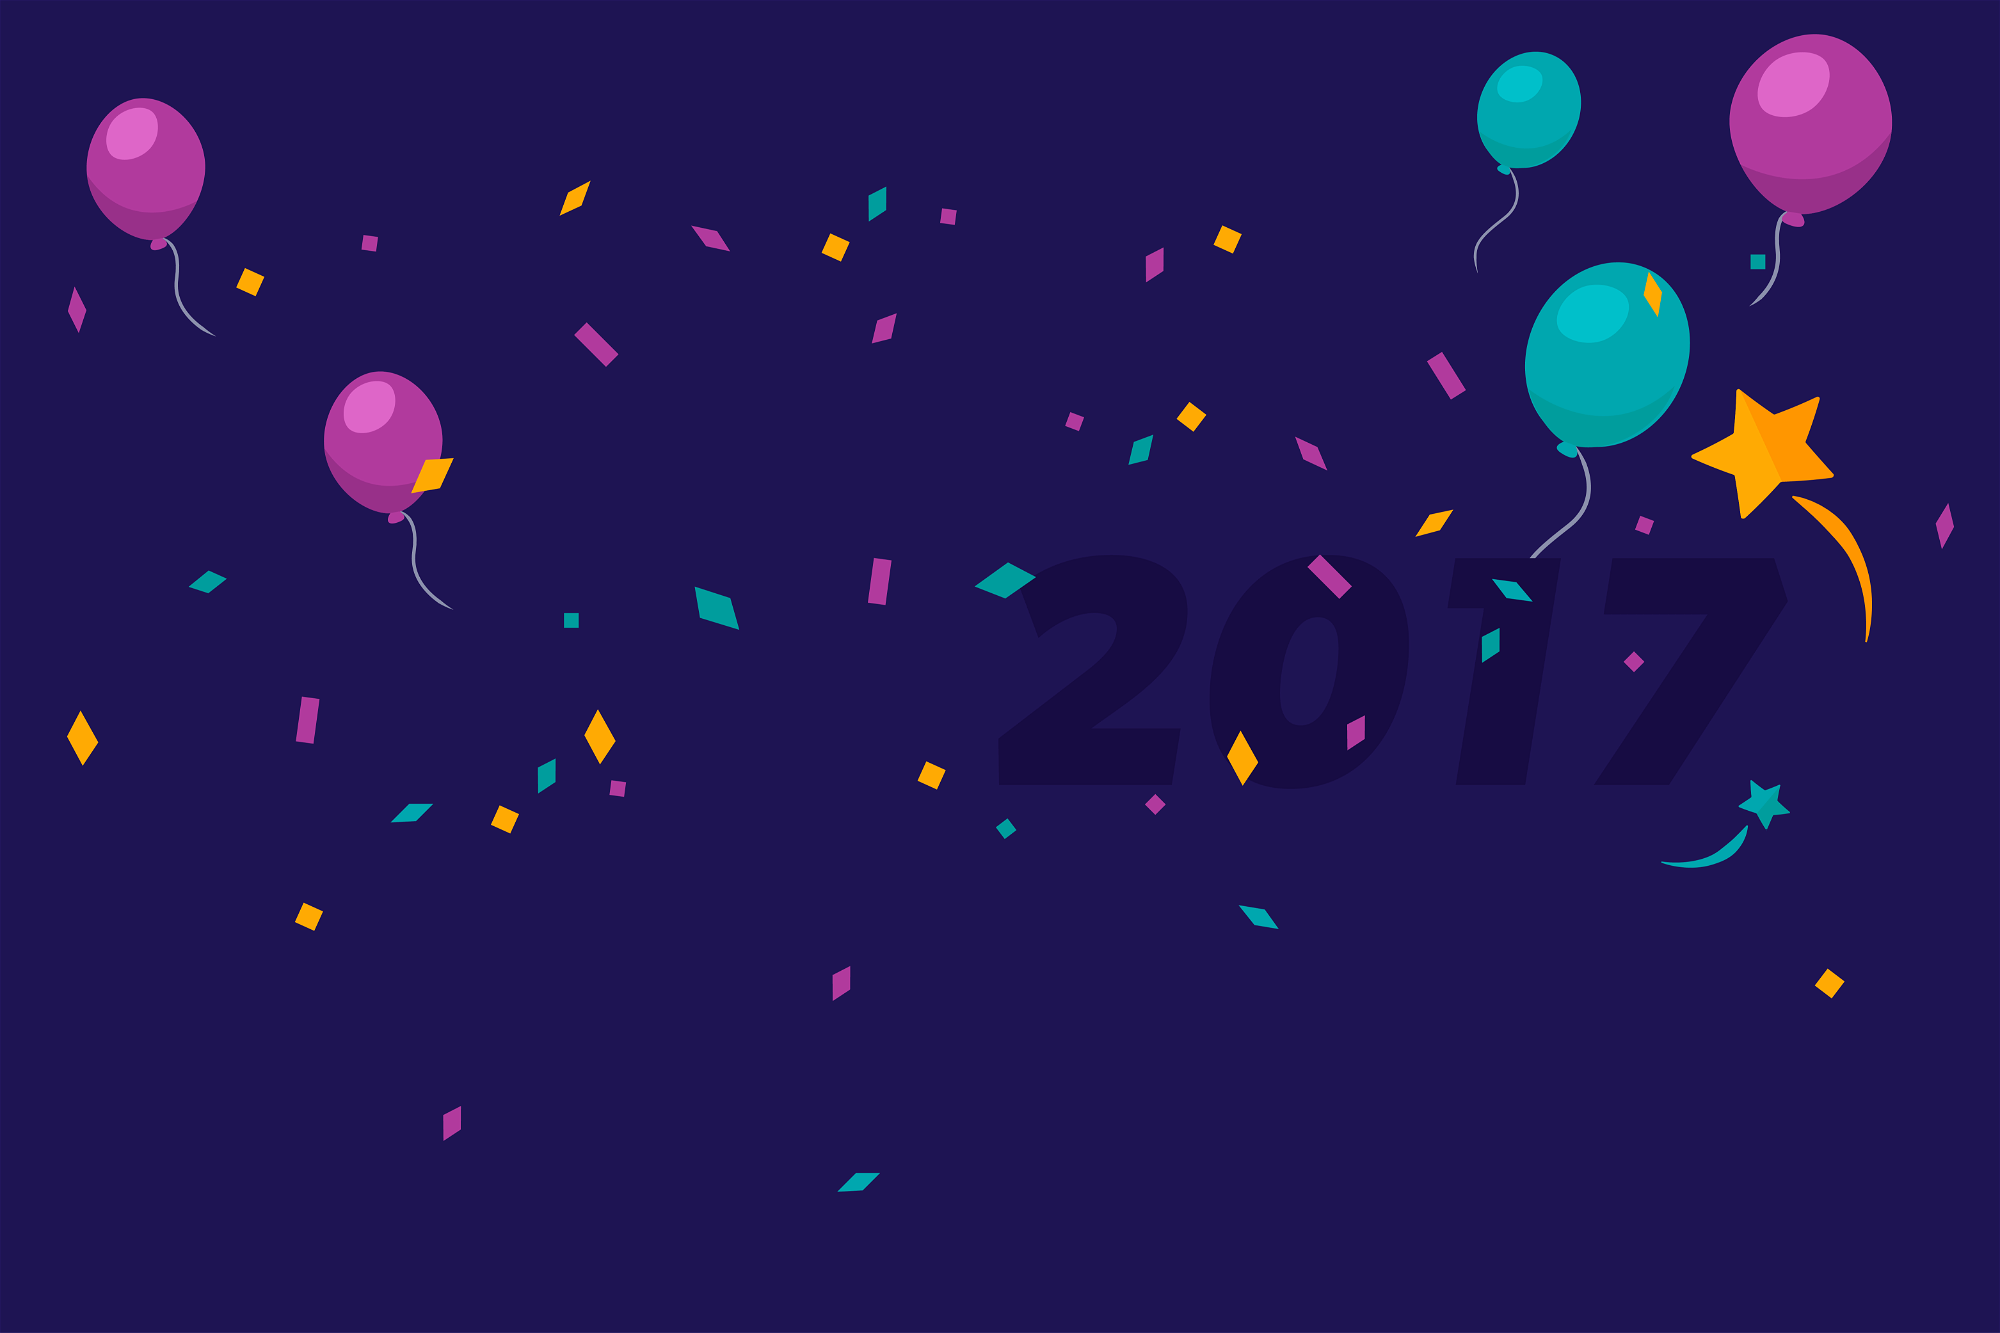 Celebration balloons and confetti graphic